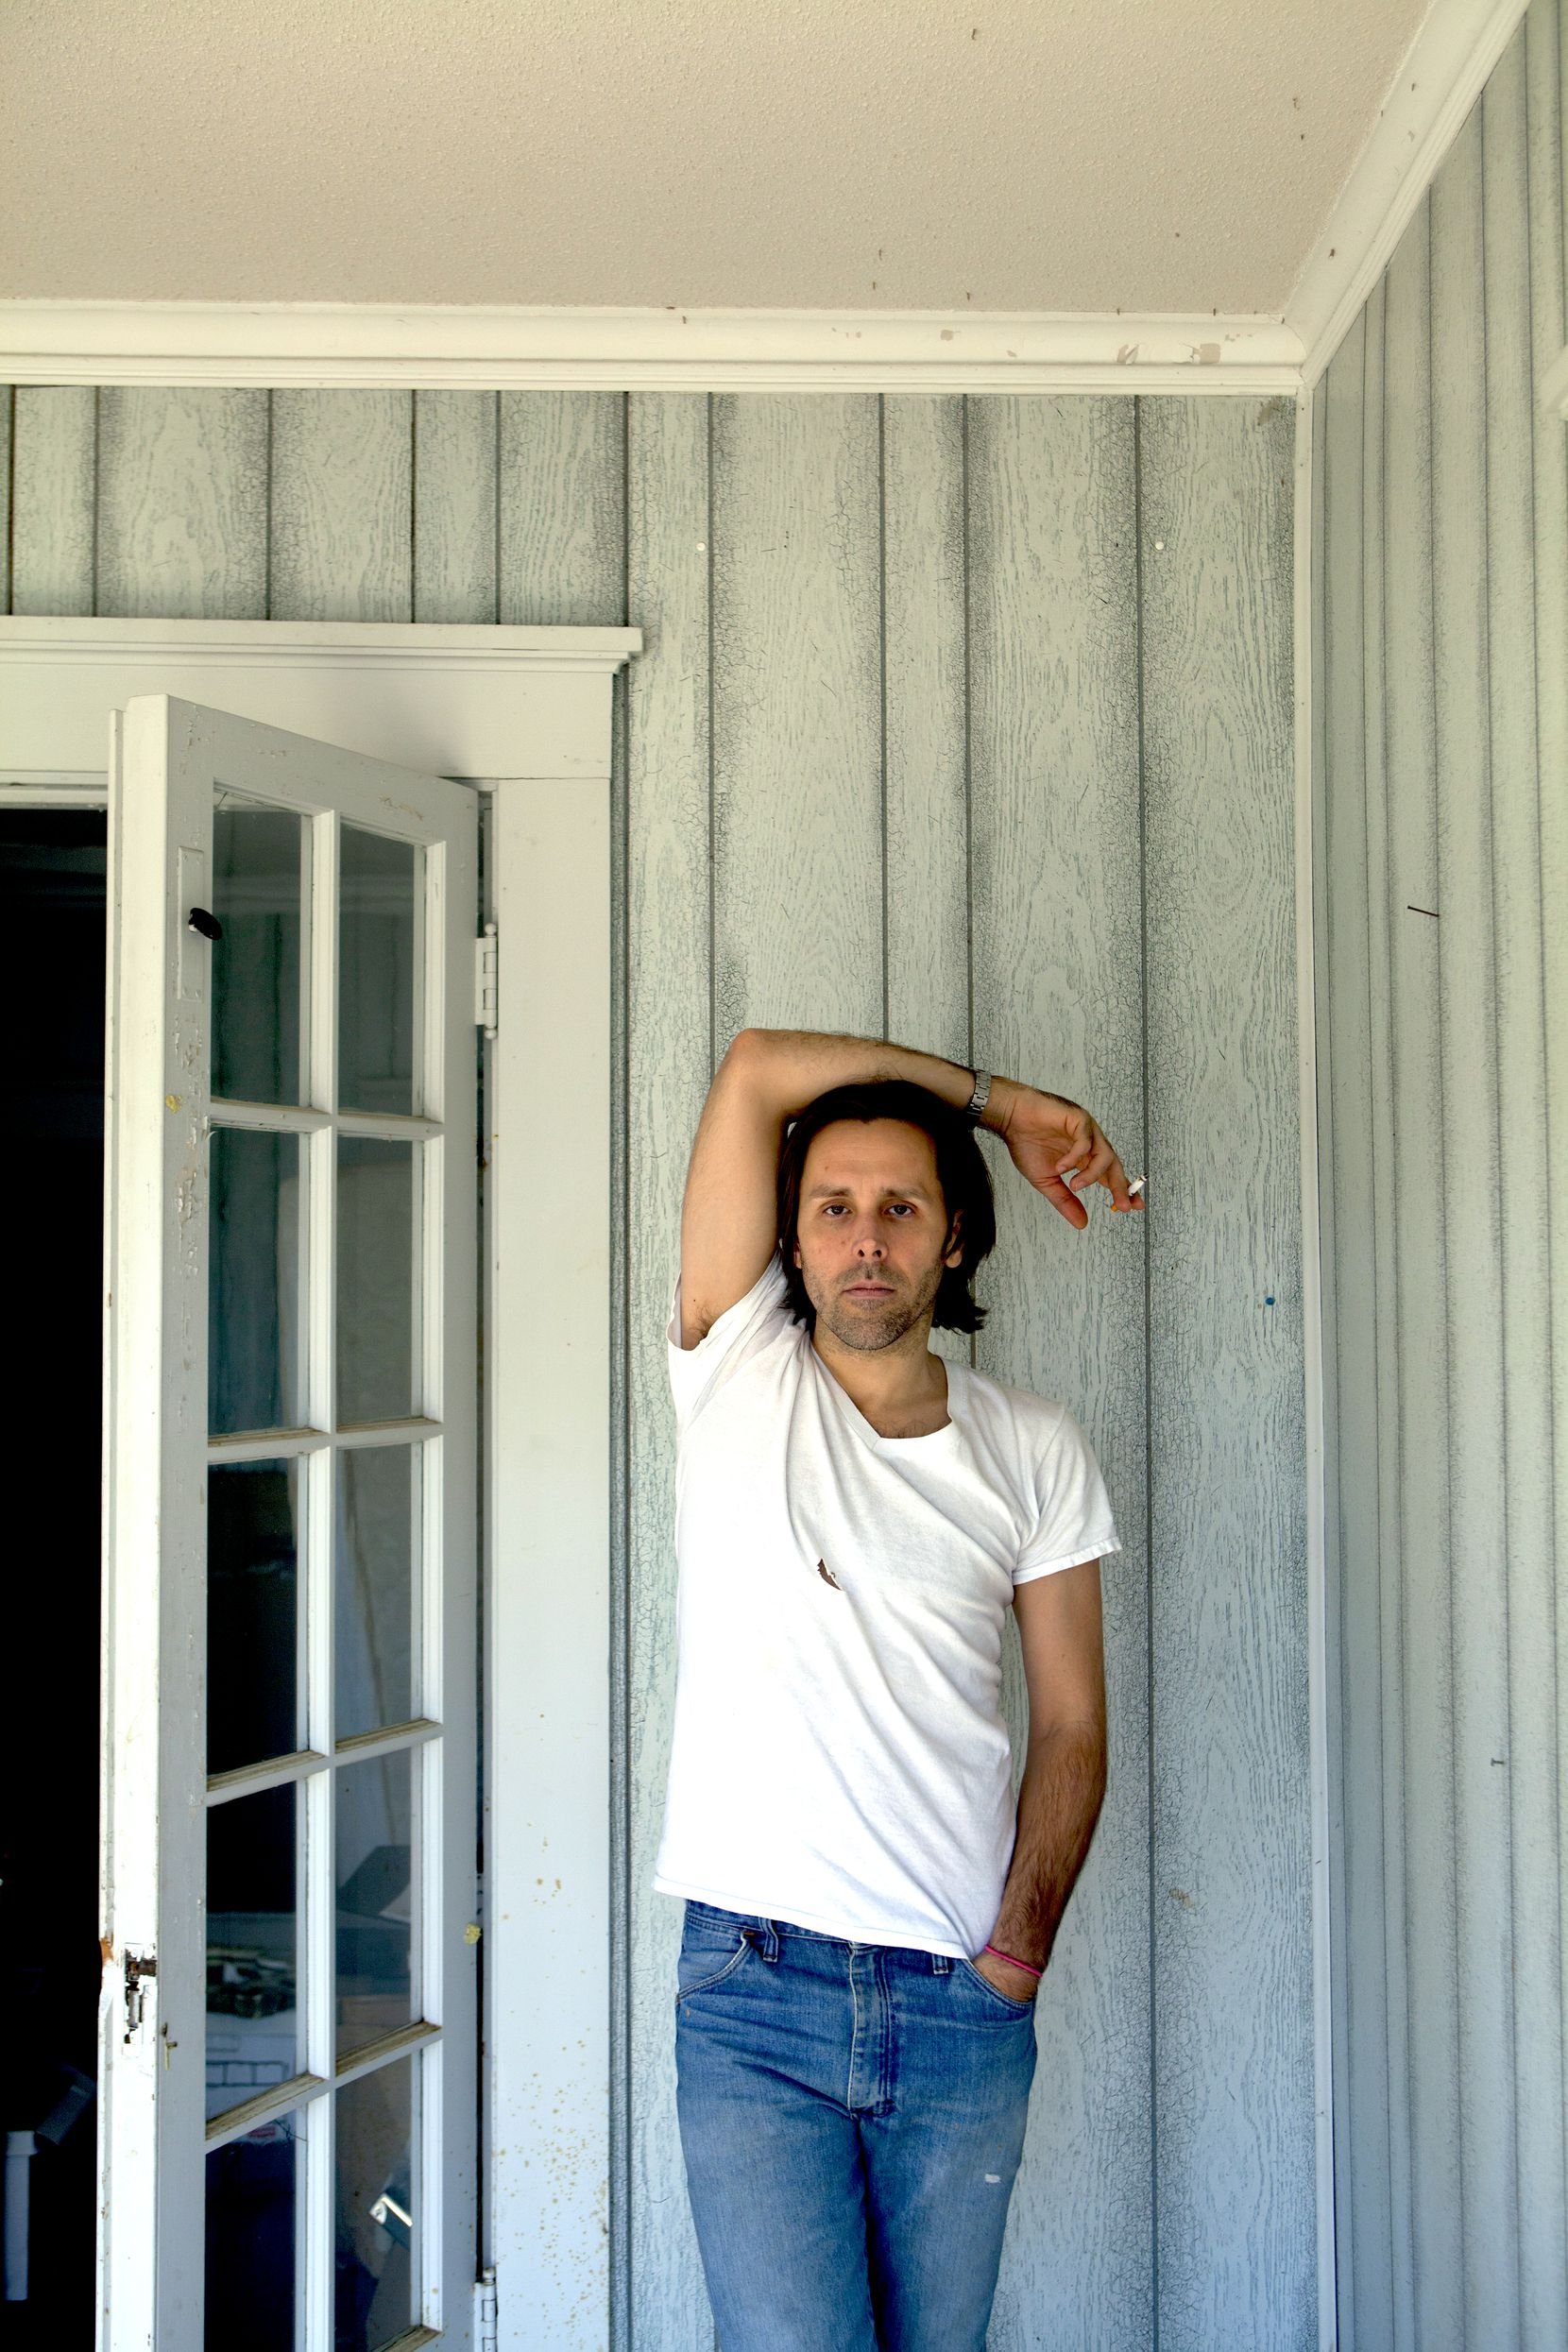 """Artist Chivas Clem works out of his house/studio in Paris, Texas. His works are on view through Feb. 20 at Erin Cluley Gallery in a group exhibition called """"(Un)Controlled."""""""